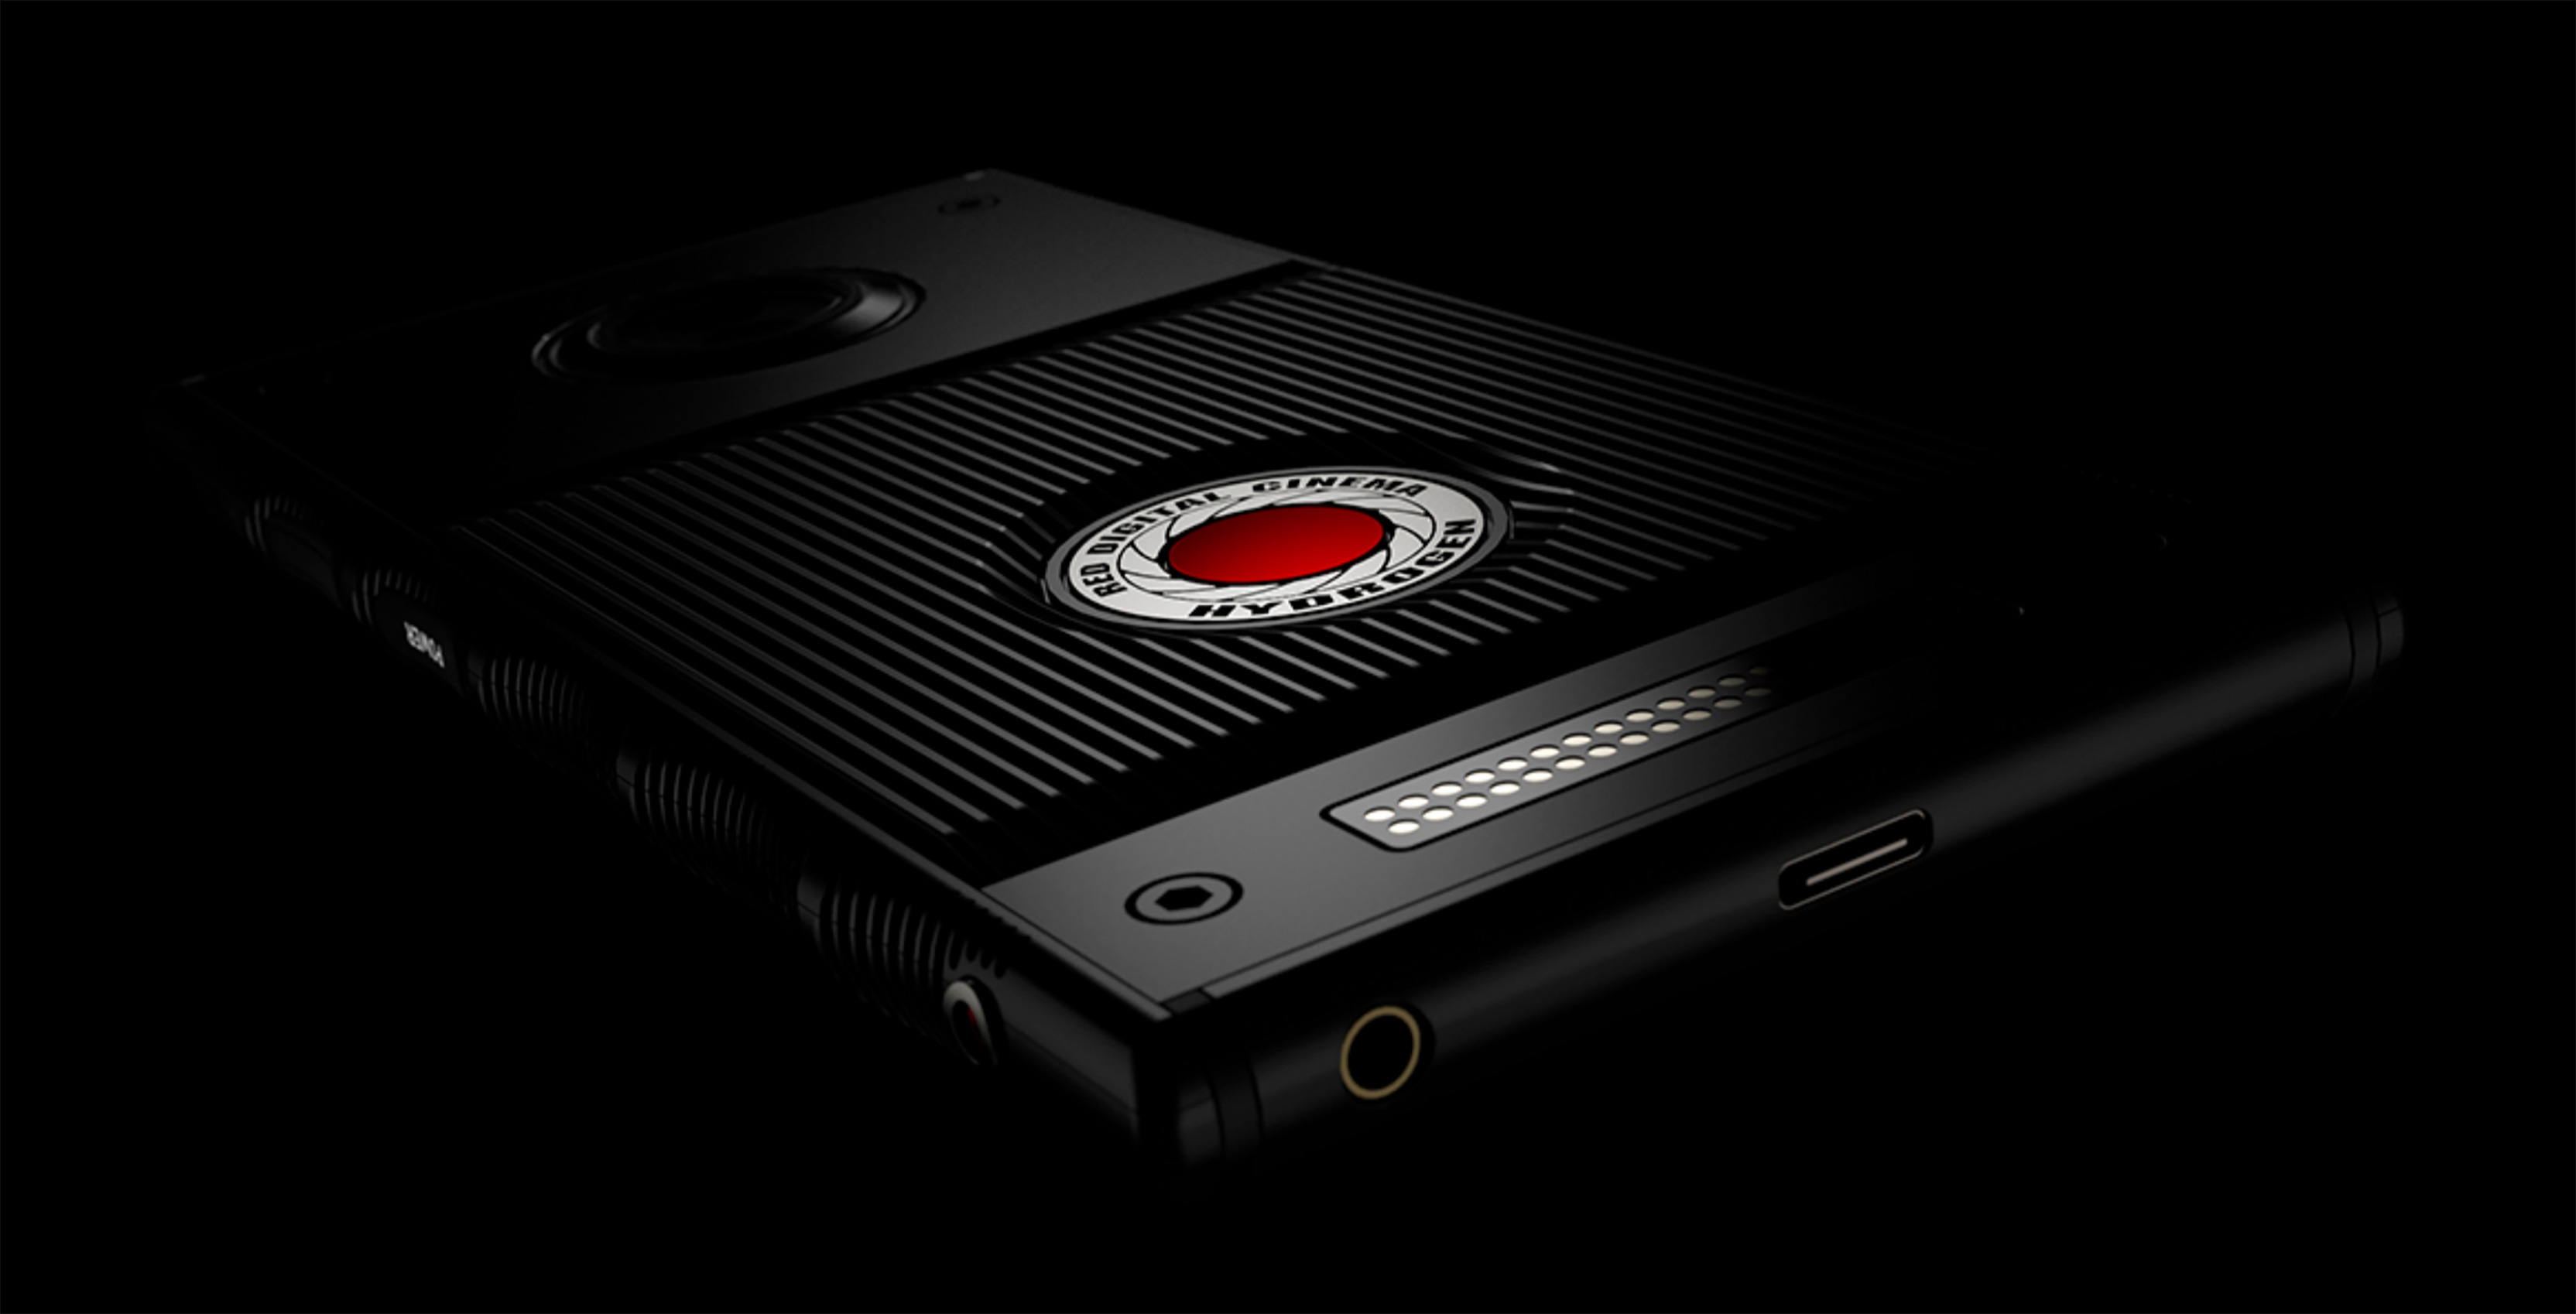 The Red Hydrogen is being delayed to add more features